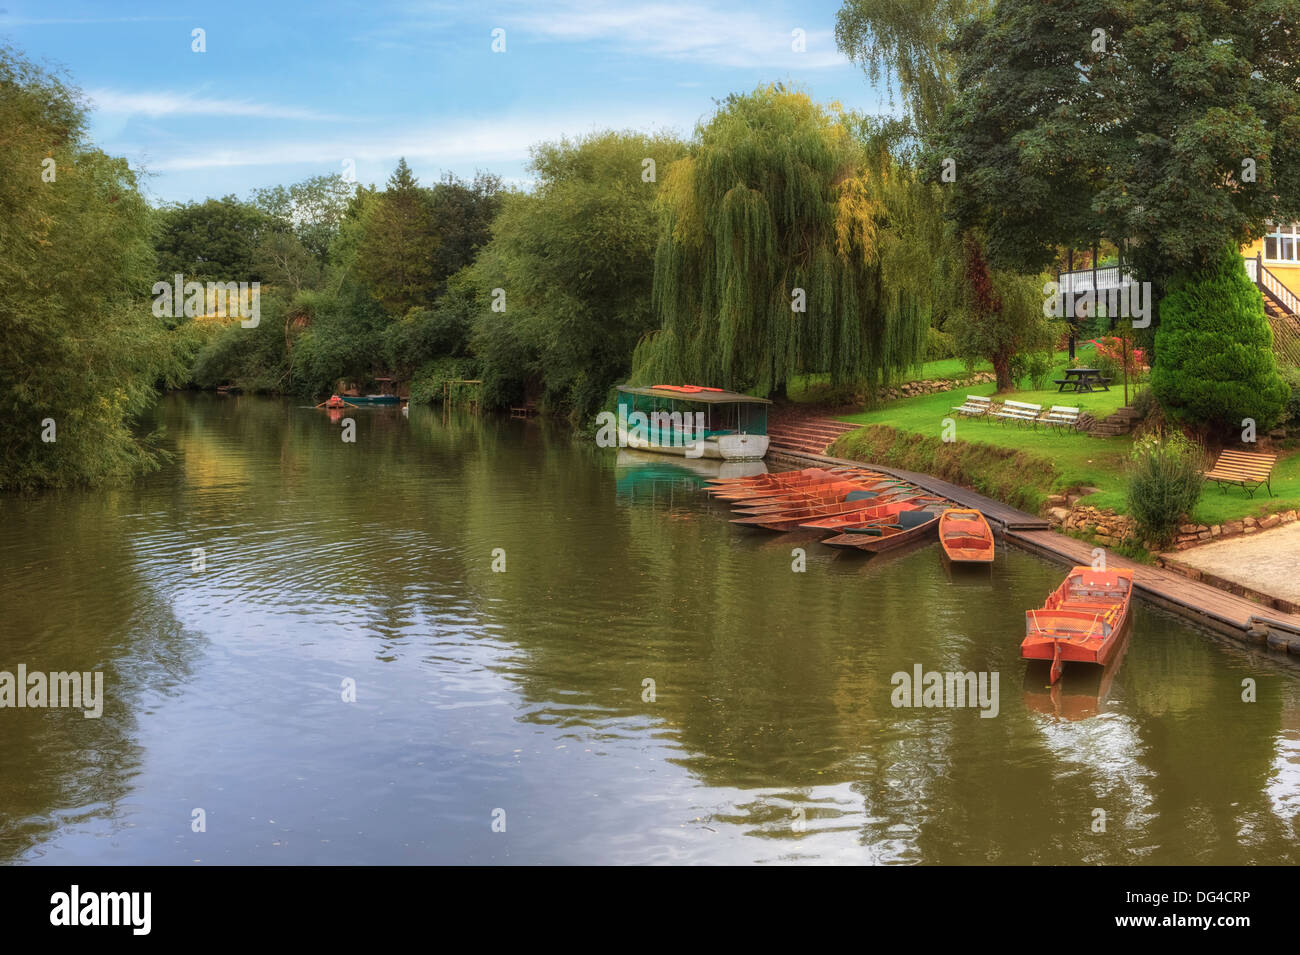 River Avon, Bath, Somerset, England, United Kingdom - Stock Image